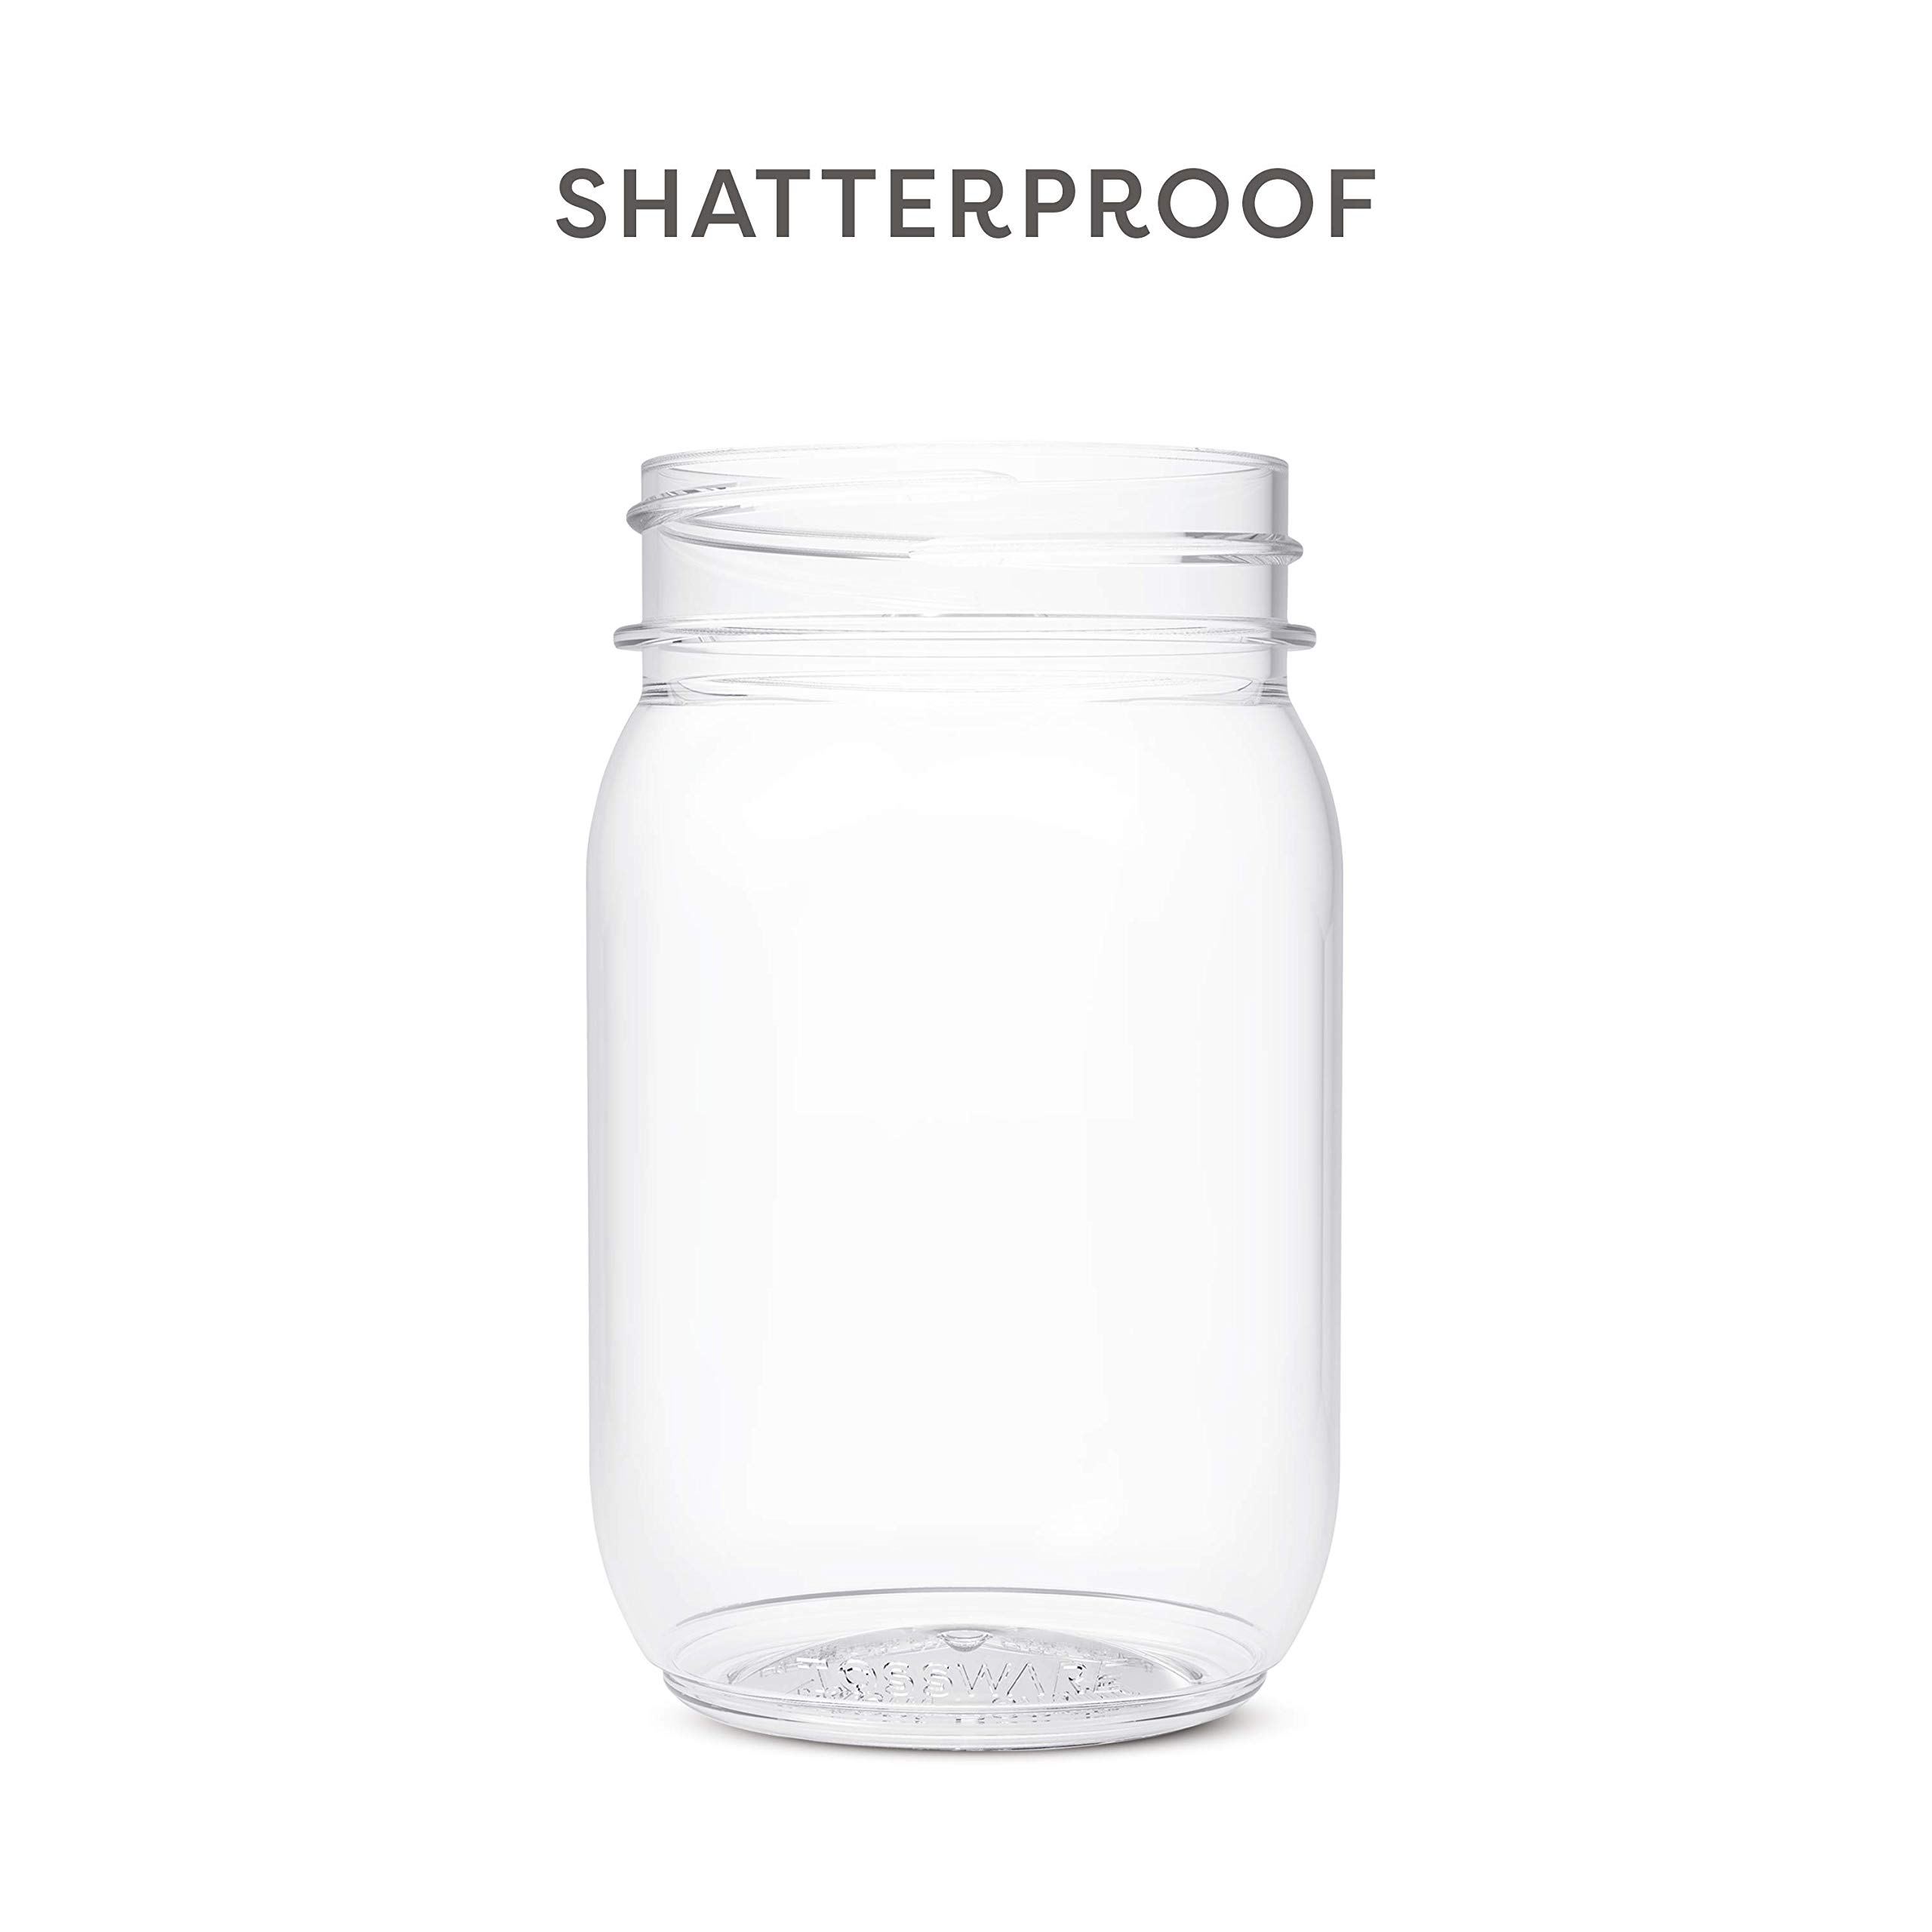 TOSSWARE 16oz Mason Jar - Set of 48- Recyclable Plastic Mason Cocktail Cup, Shatterproof and BPA-free Drinking Jar by TOSSWARE (Image #5)